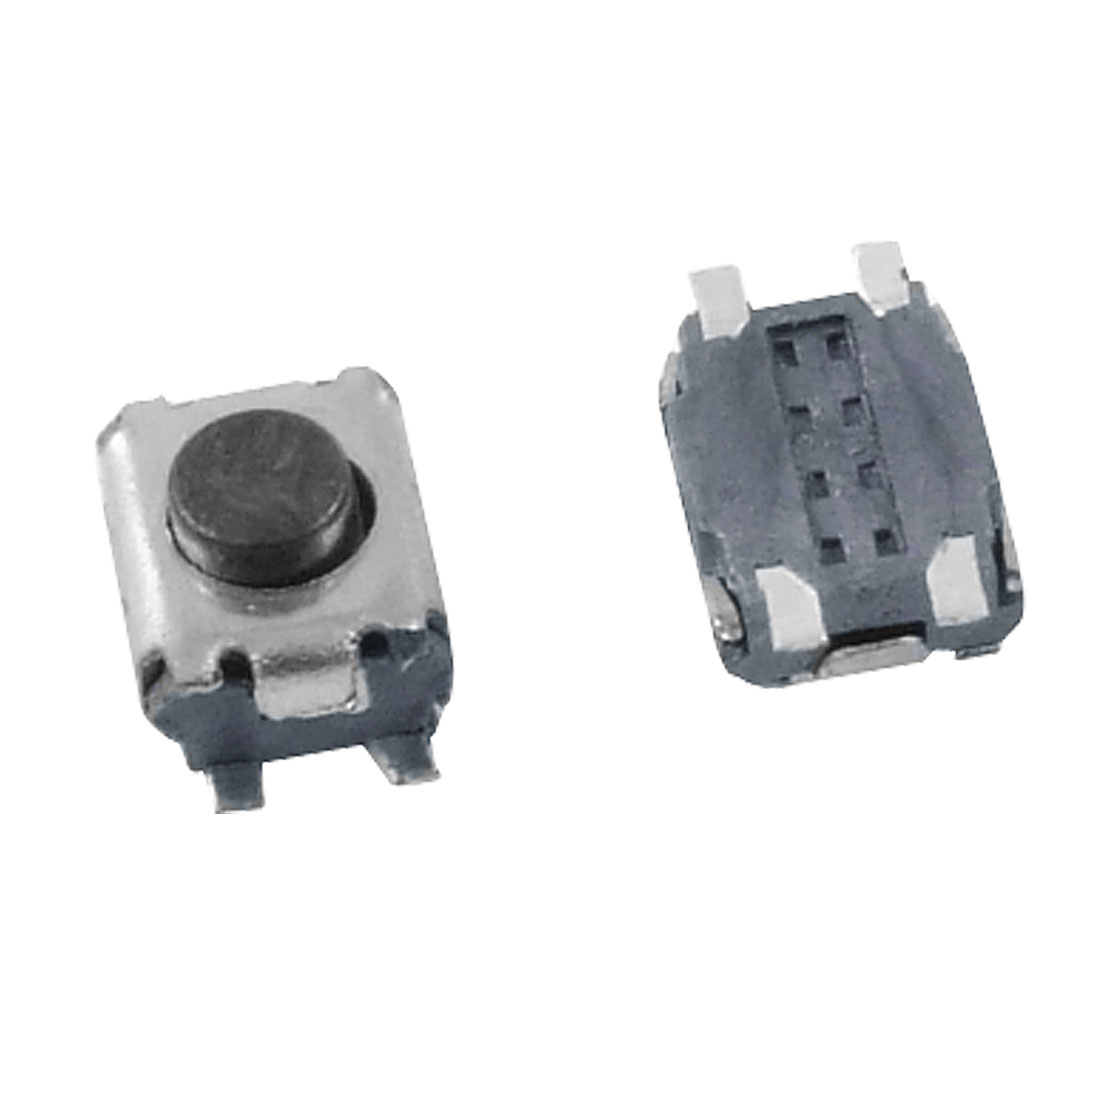 50 Pcs Momentary Tactile Tact Push Button Switch 3 x 3.5 x 2mm 4 Pin SMD SMT